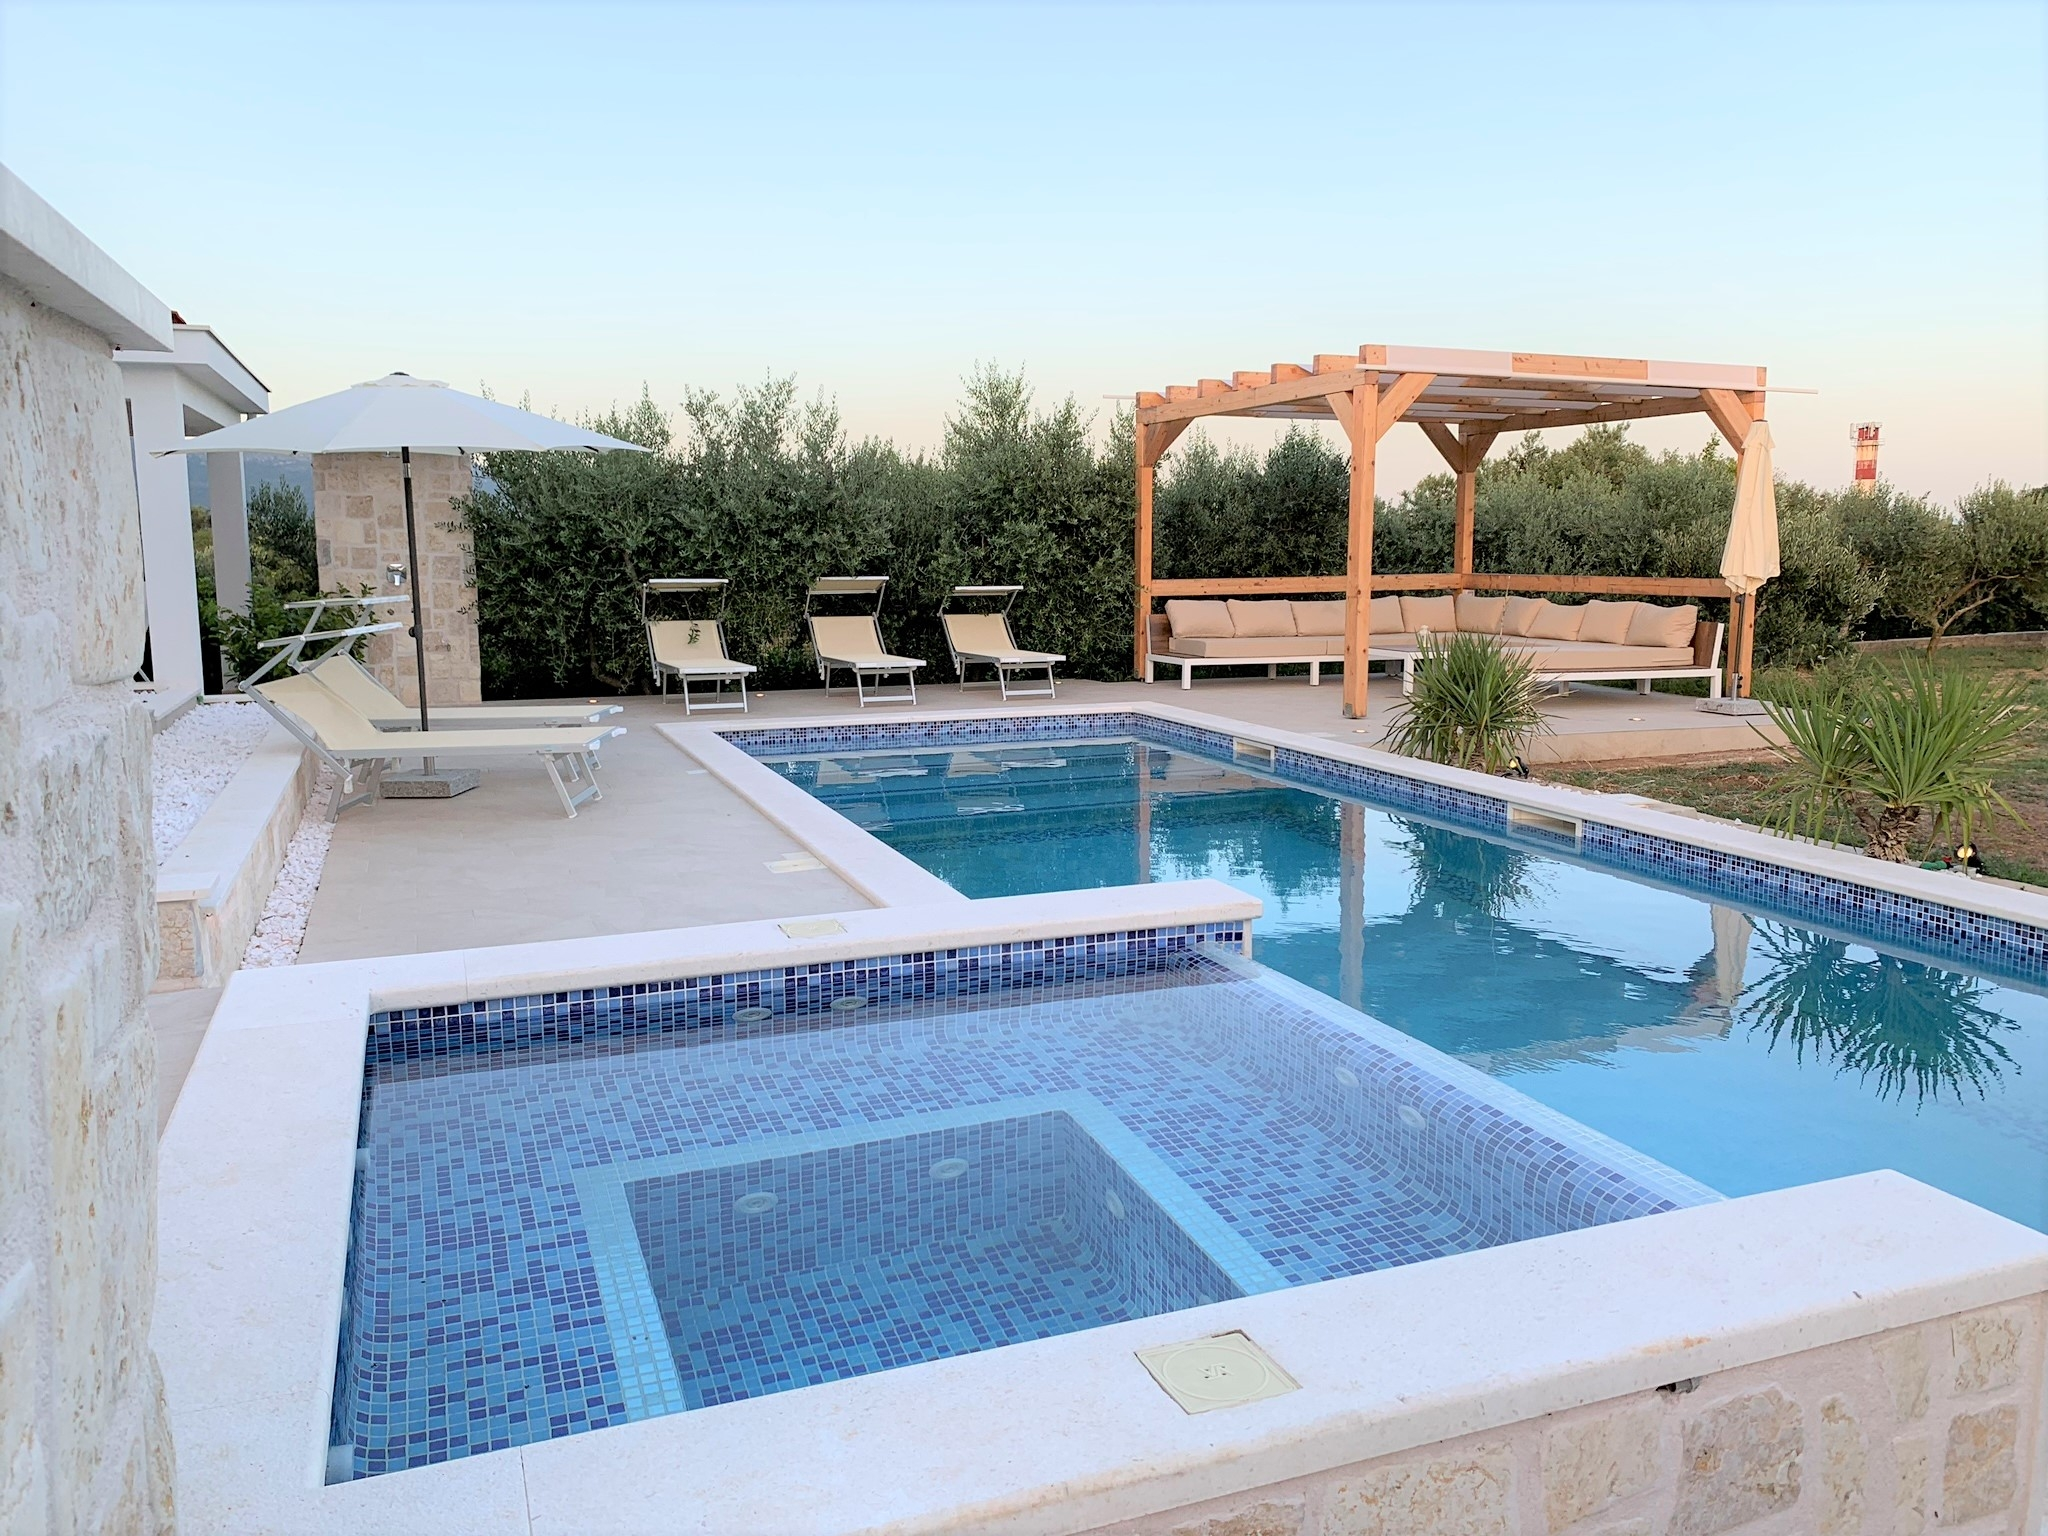 Rent Croatia holiday home in Split region